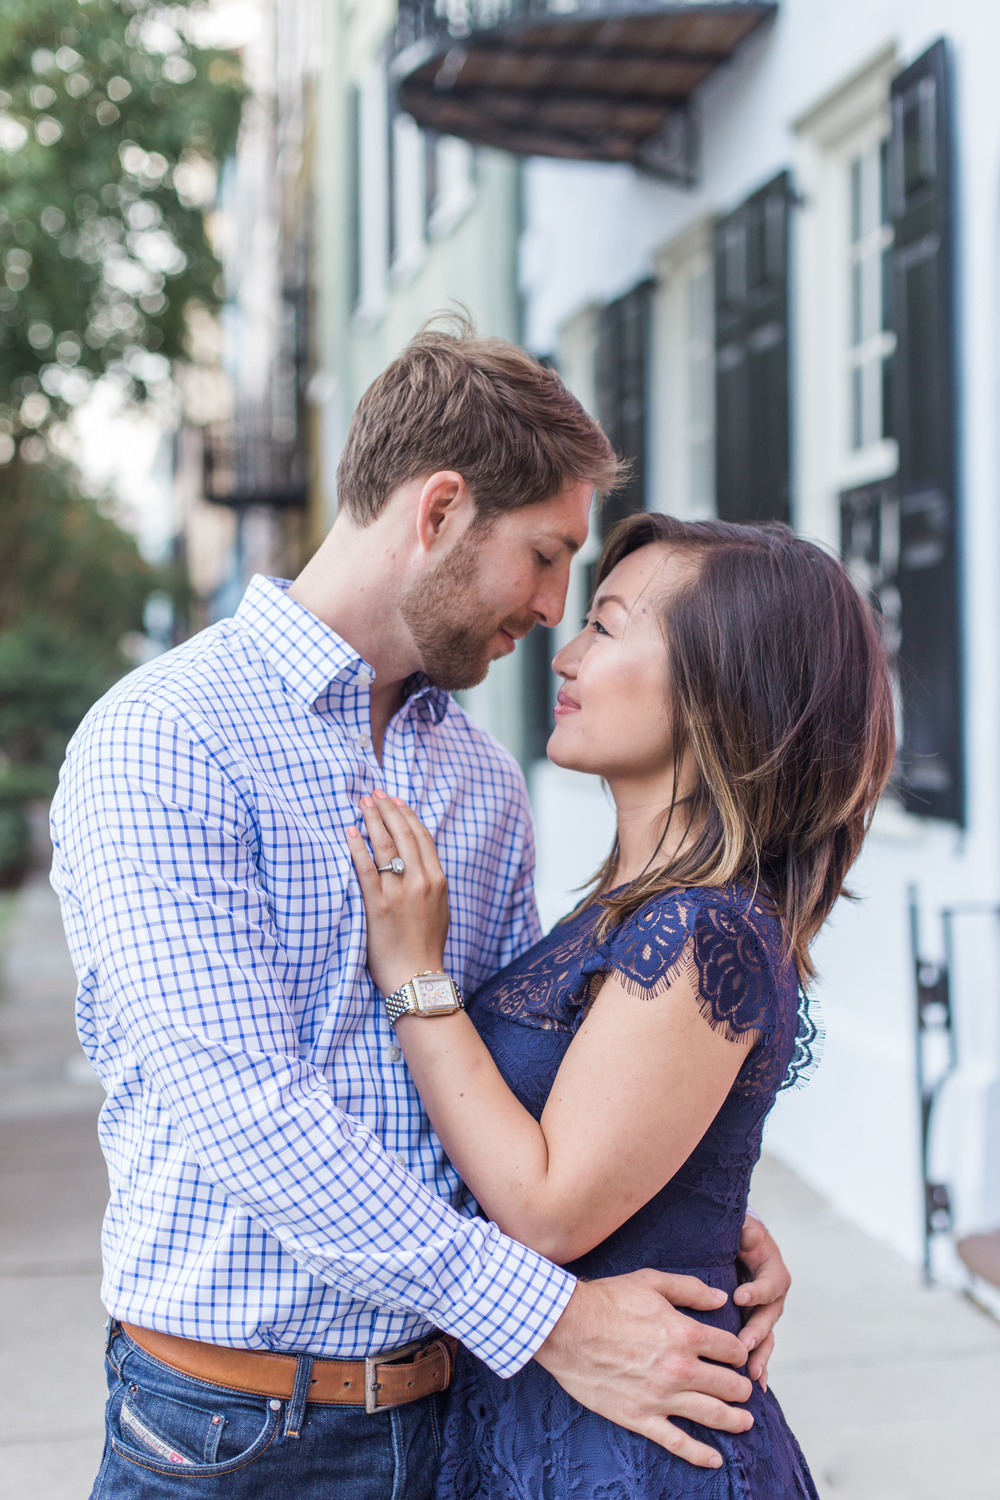 Mirrormirror-muah-engagment-airbrush-makeup-charleston-hair-the-click-chick-photography-117.jpg